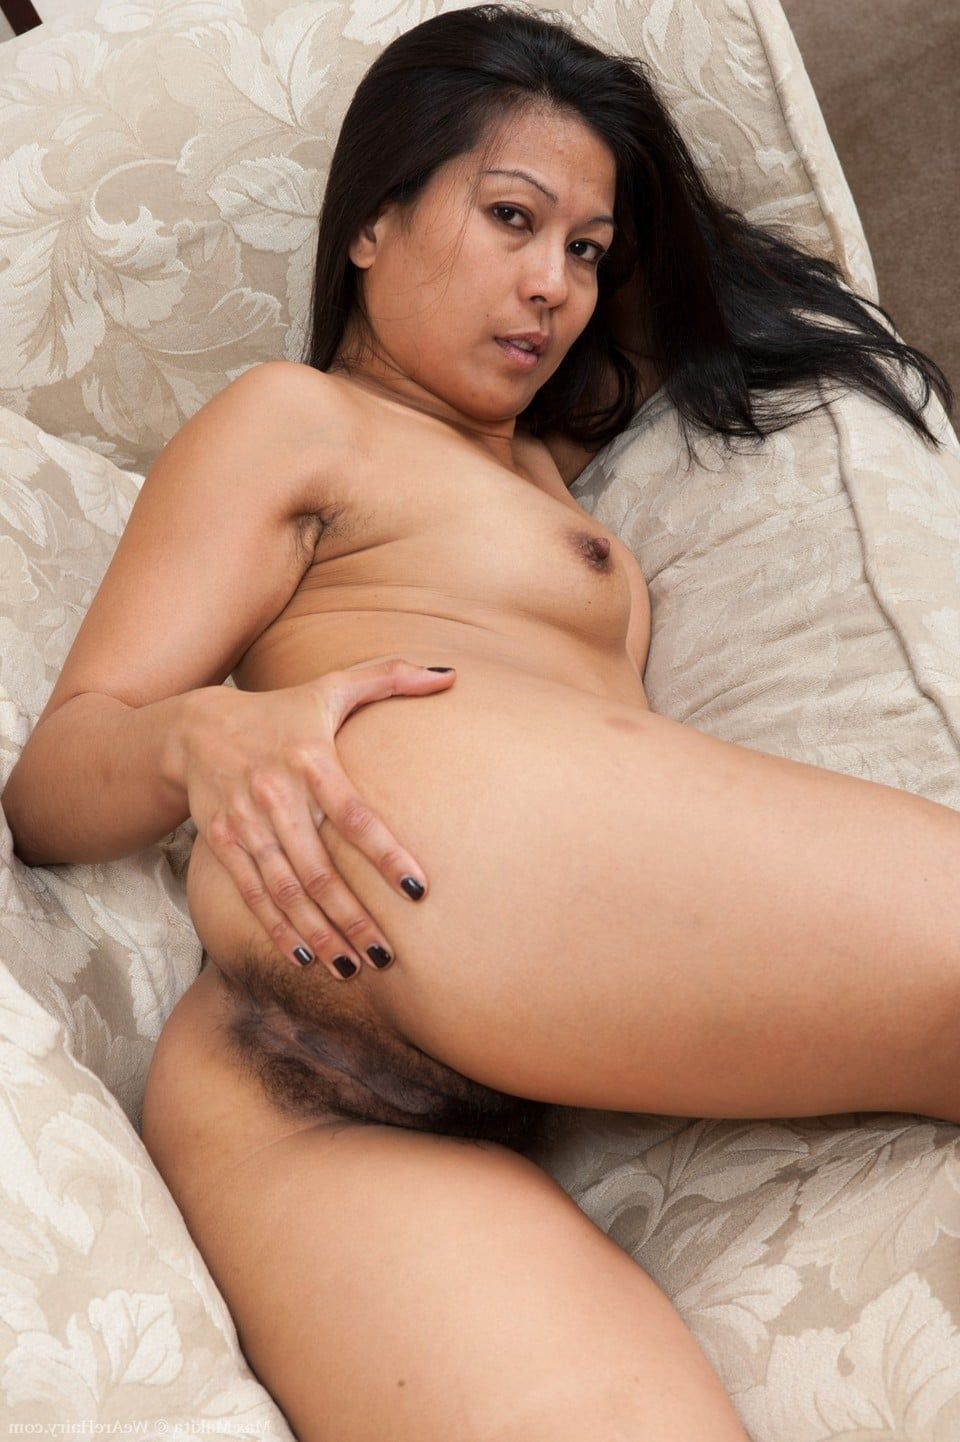 Naked Pictures Of Asian Women 20